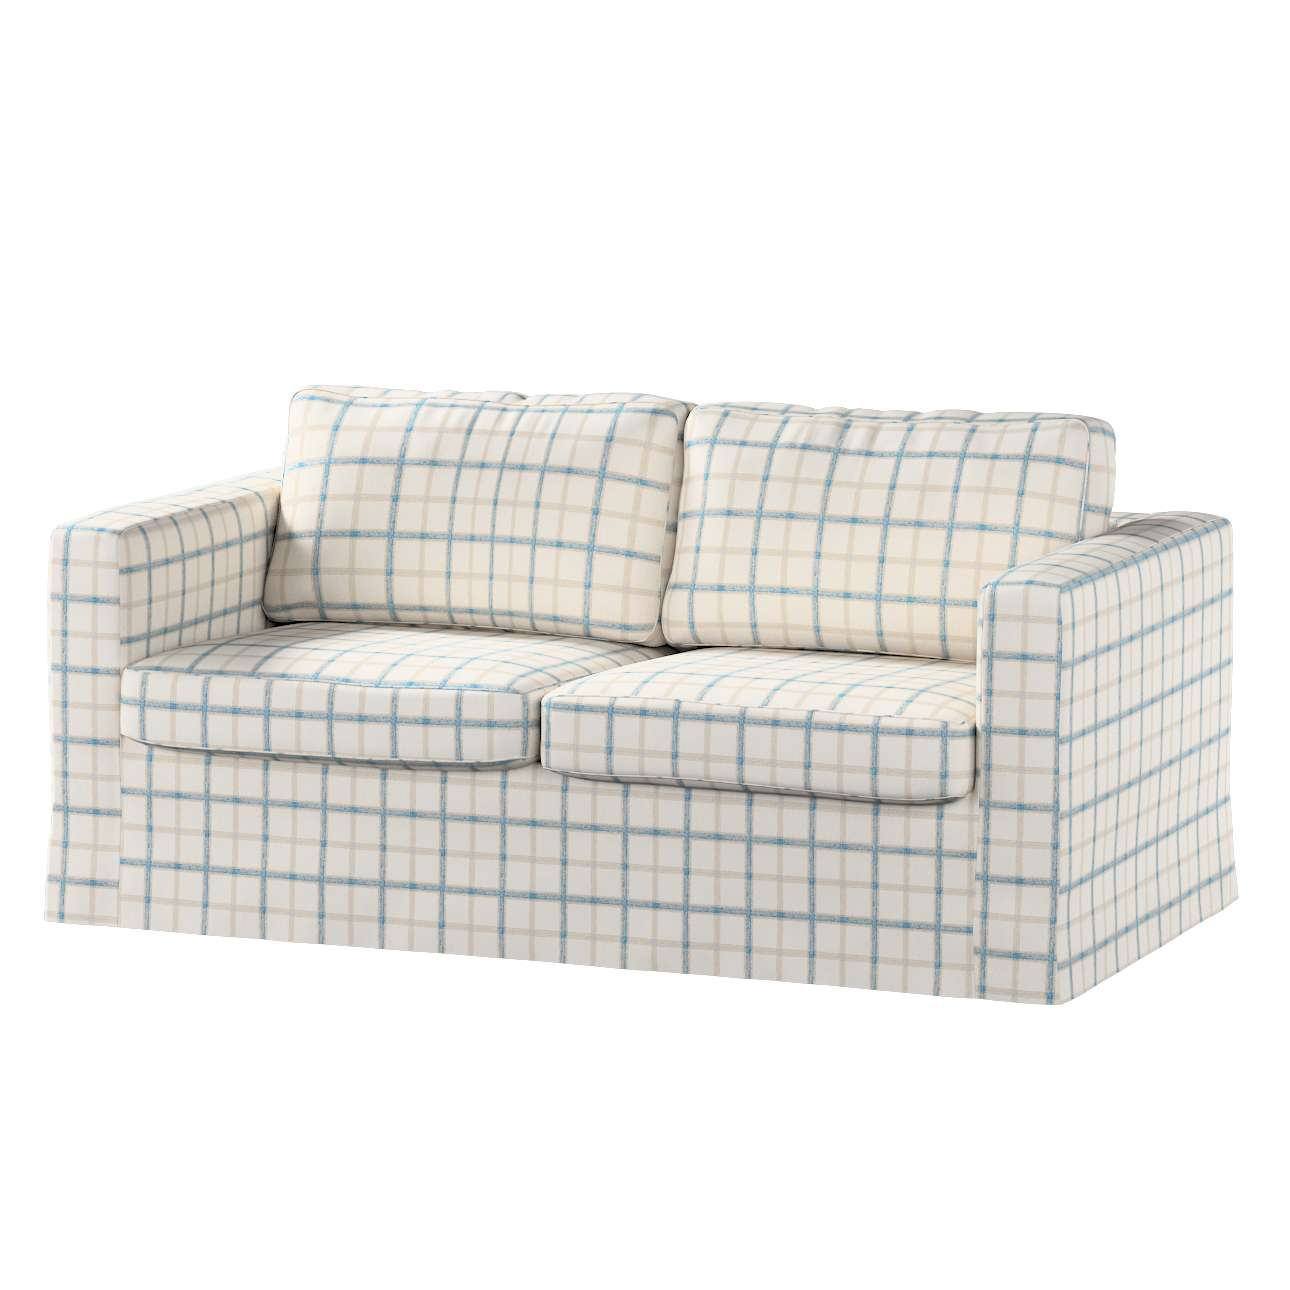 Floor length Karlstad 2-seater sofa cover in collection Avinon, fabric: 131-66